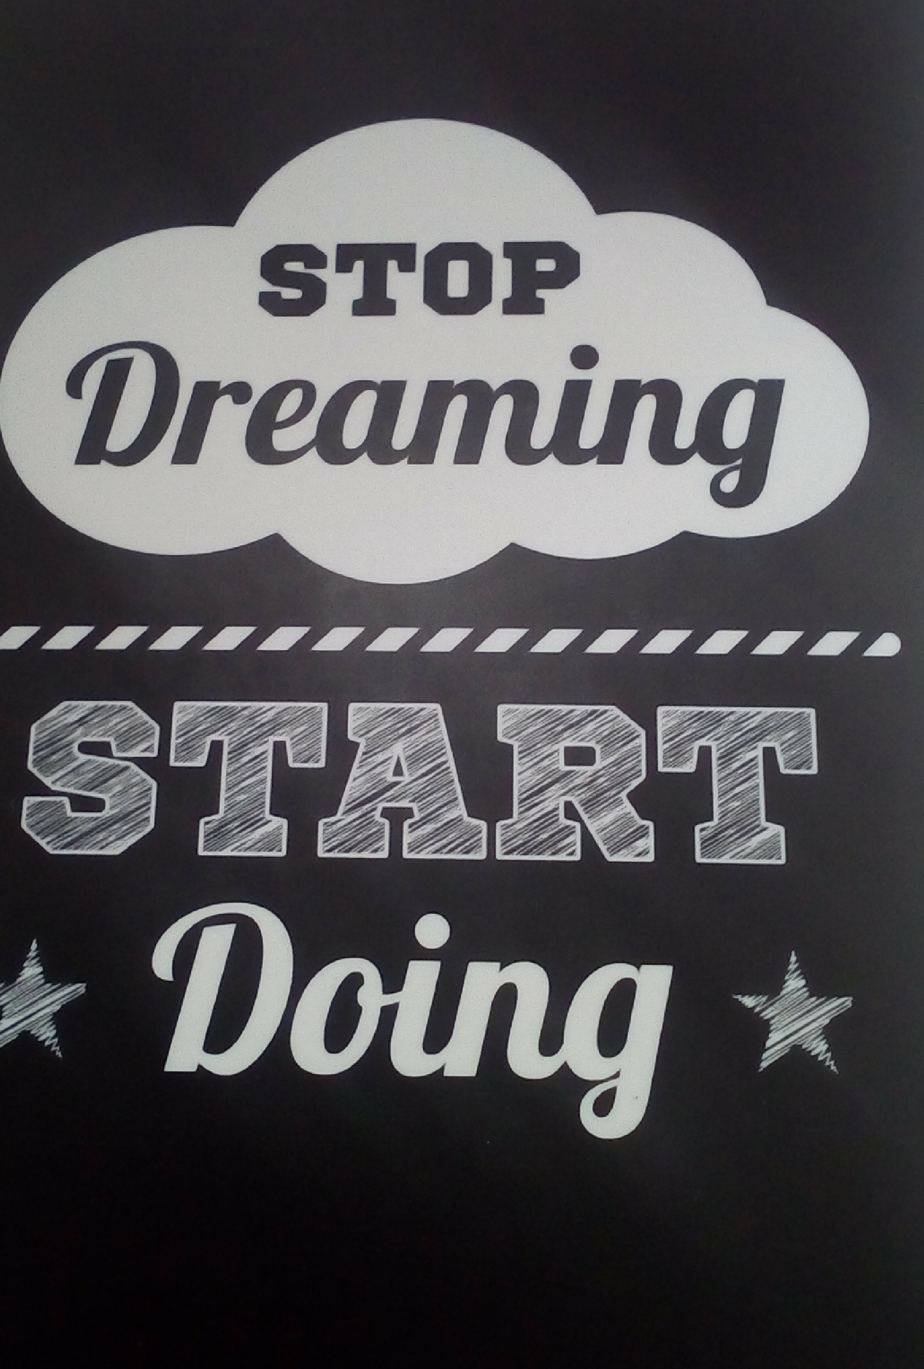 Stop dreaming and start doing.